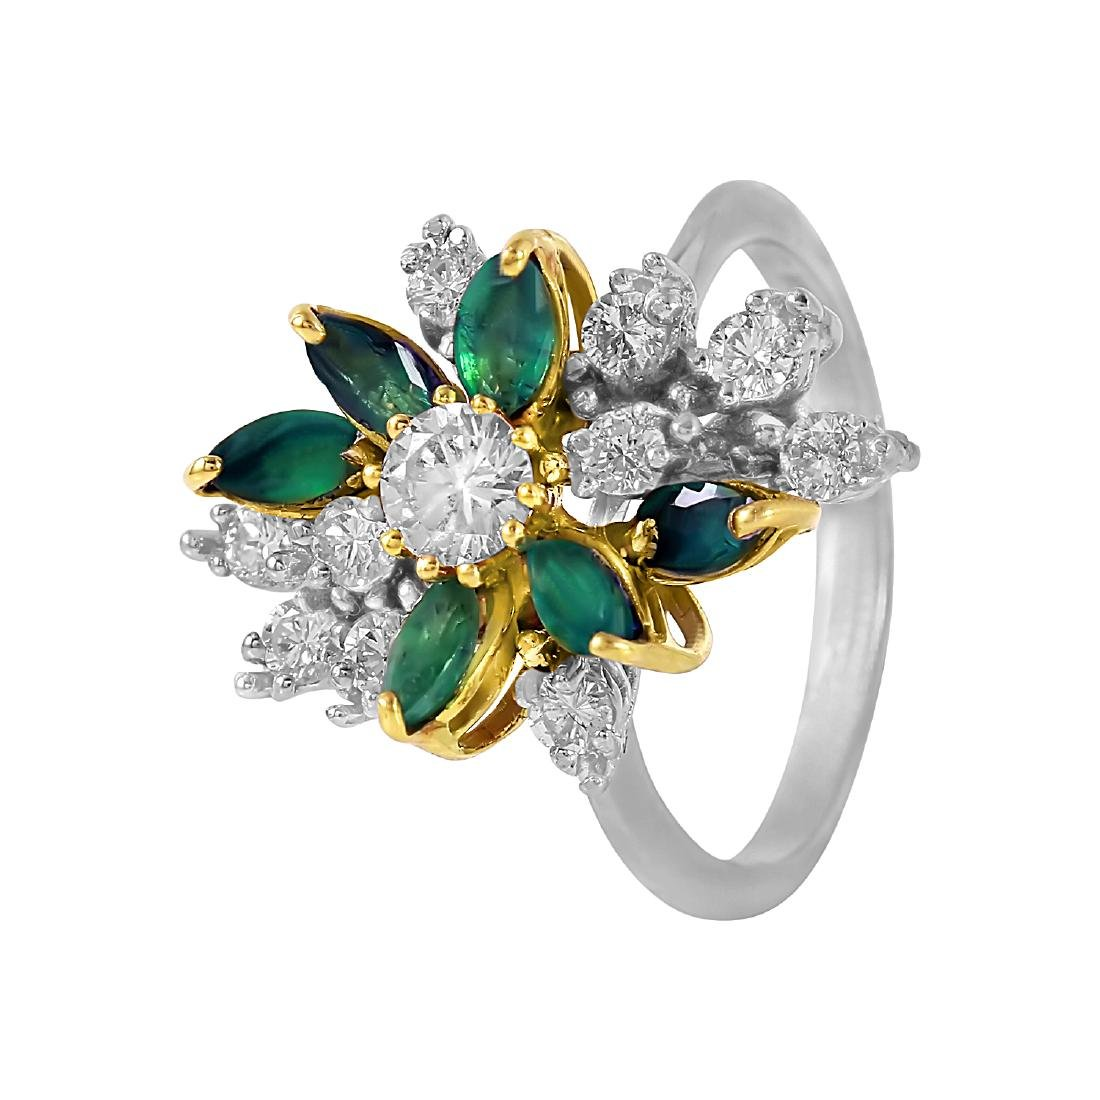 14KT Two Tone Gold Emerald and Diamond Cocktail Ring